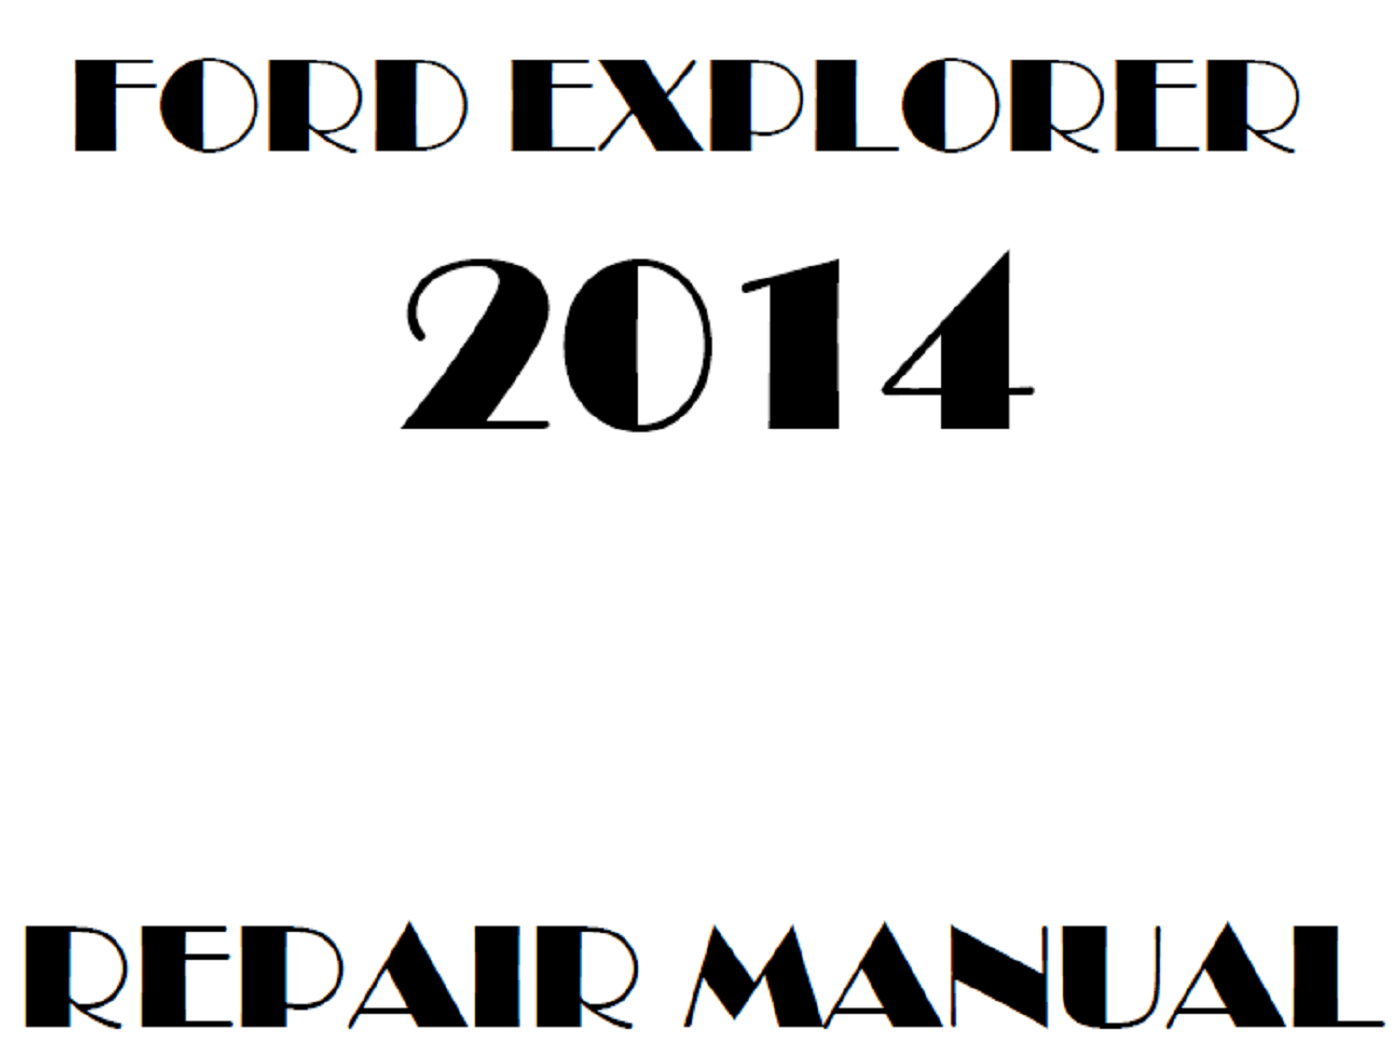 2014 Ford Explorer repair manual